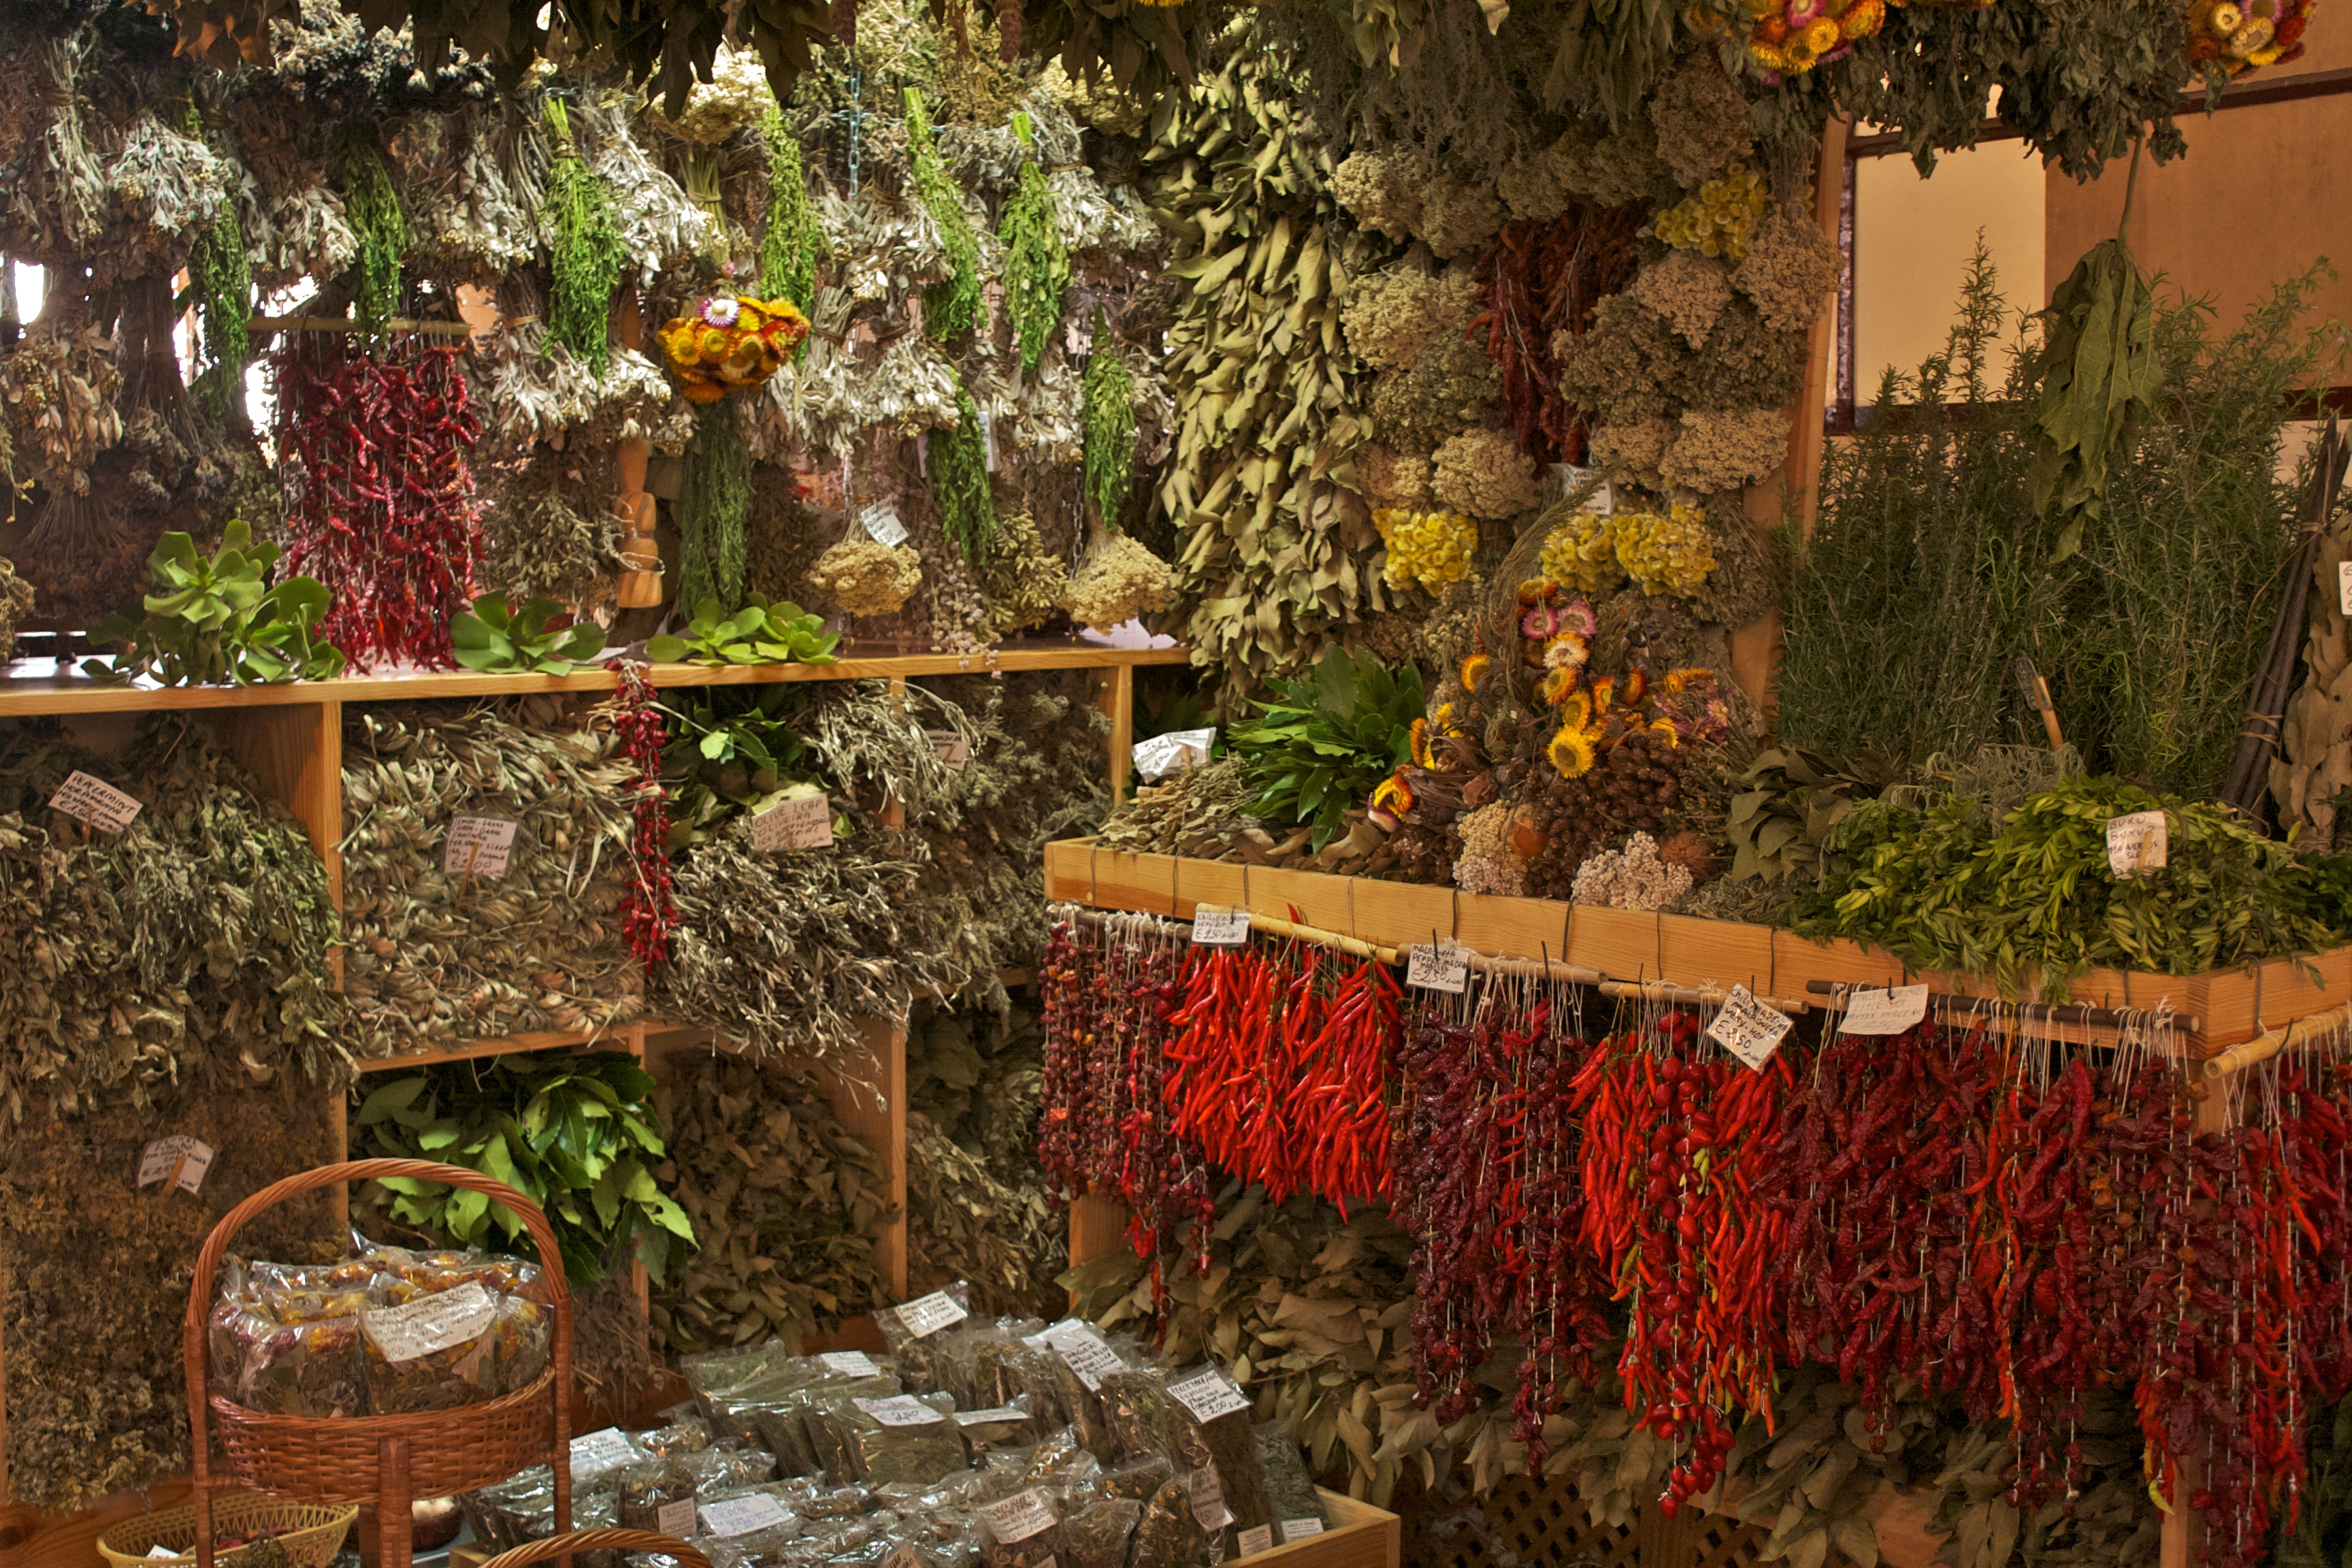 File:Spices & Herbs